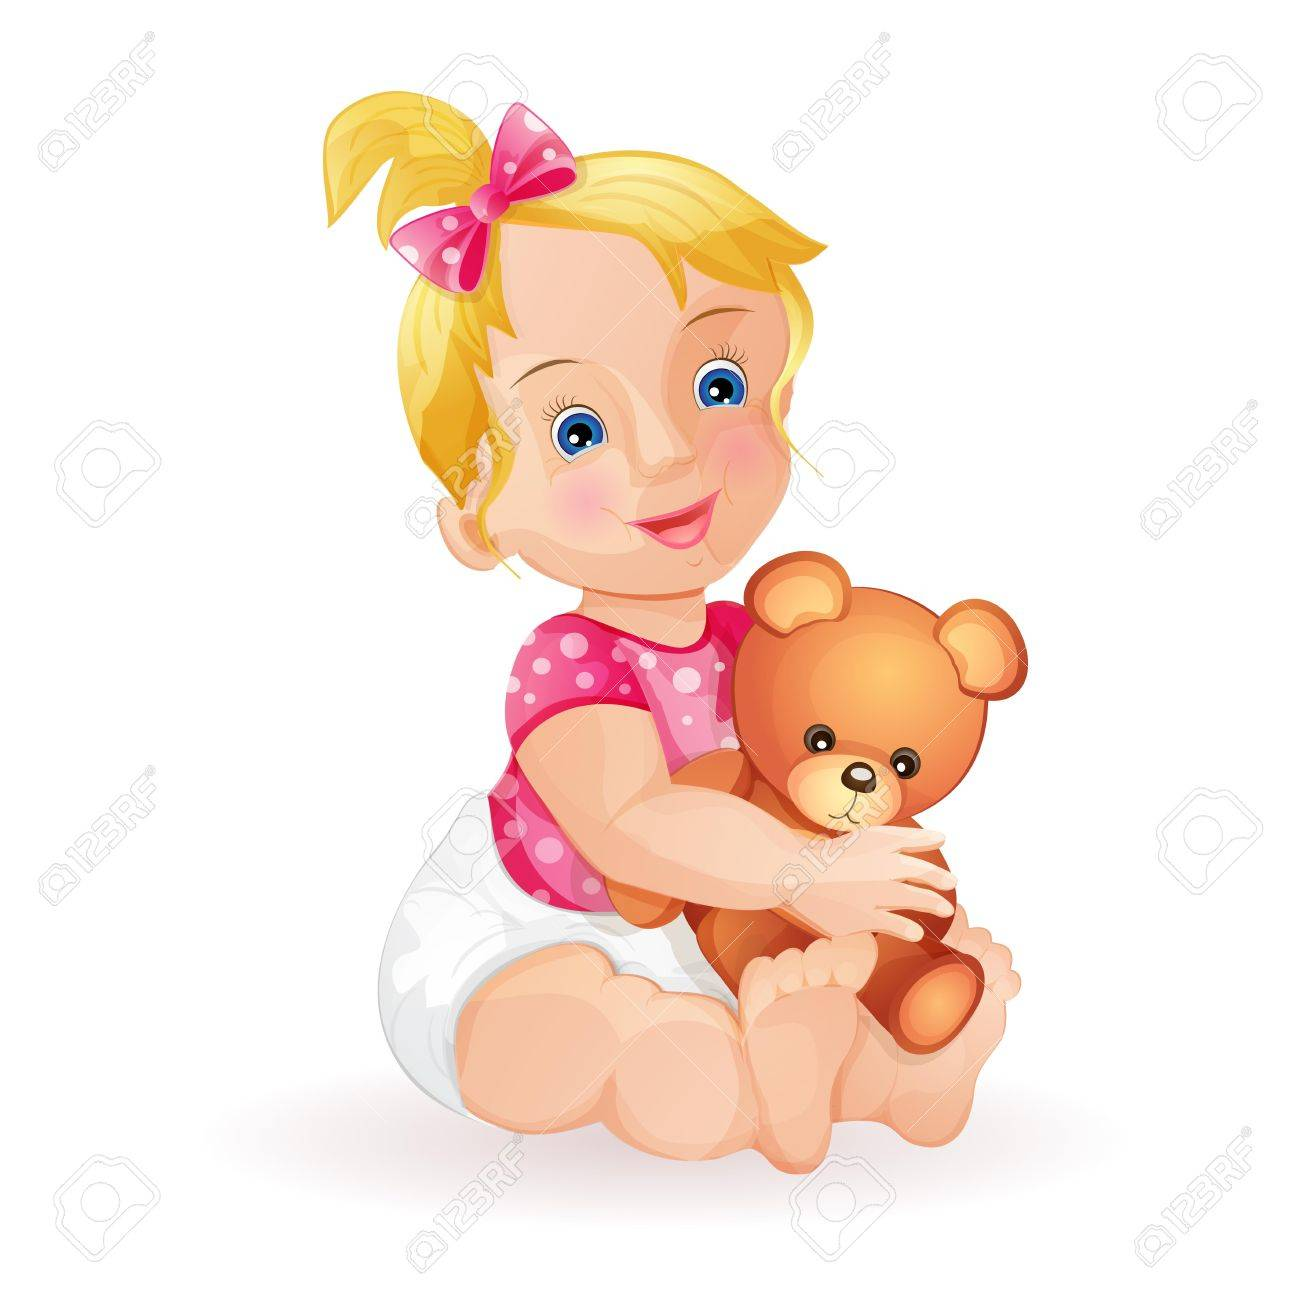 Cute baby girl holding teddy bear isolated on white Stock Vector - 15649749